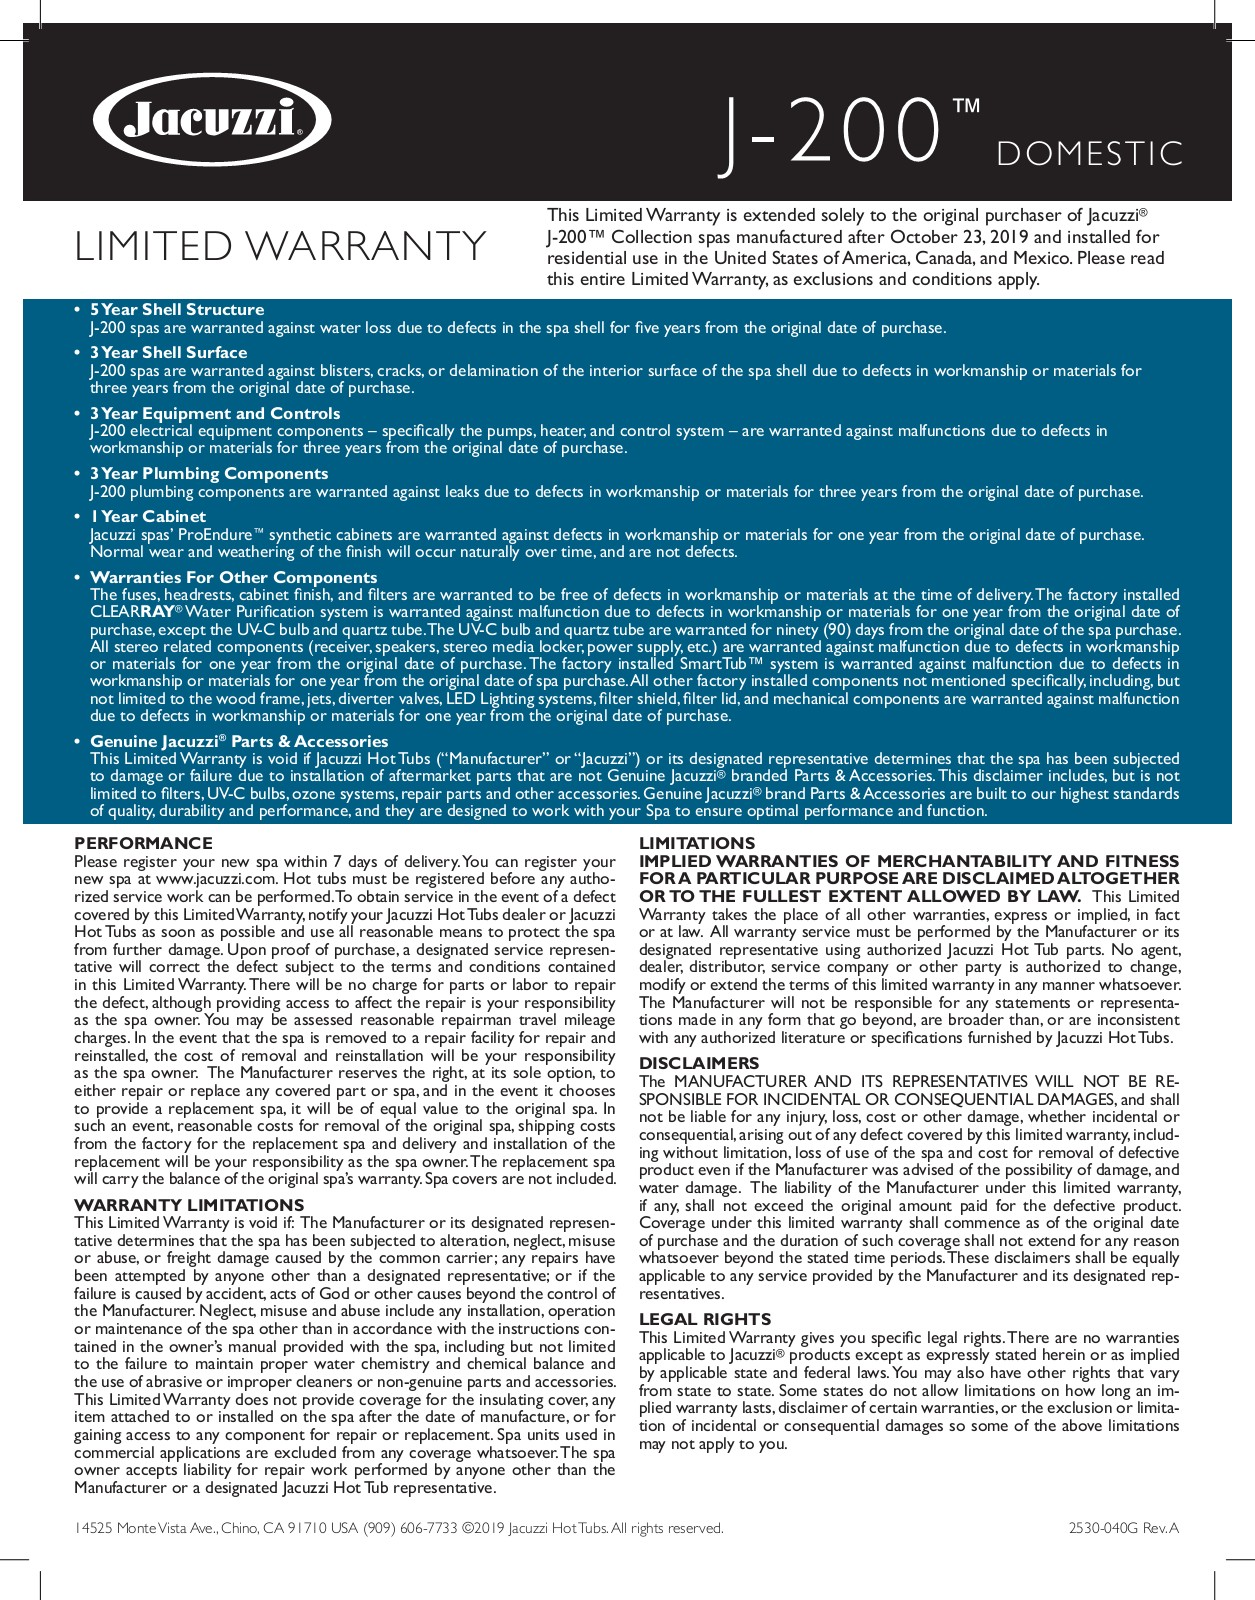 J-200 Jacuzzi Collection - Warranty & Protection Information